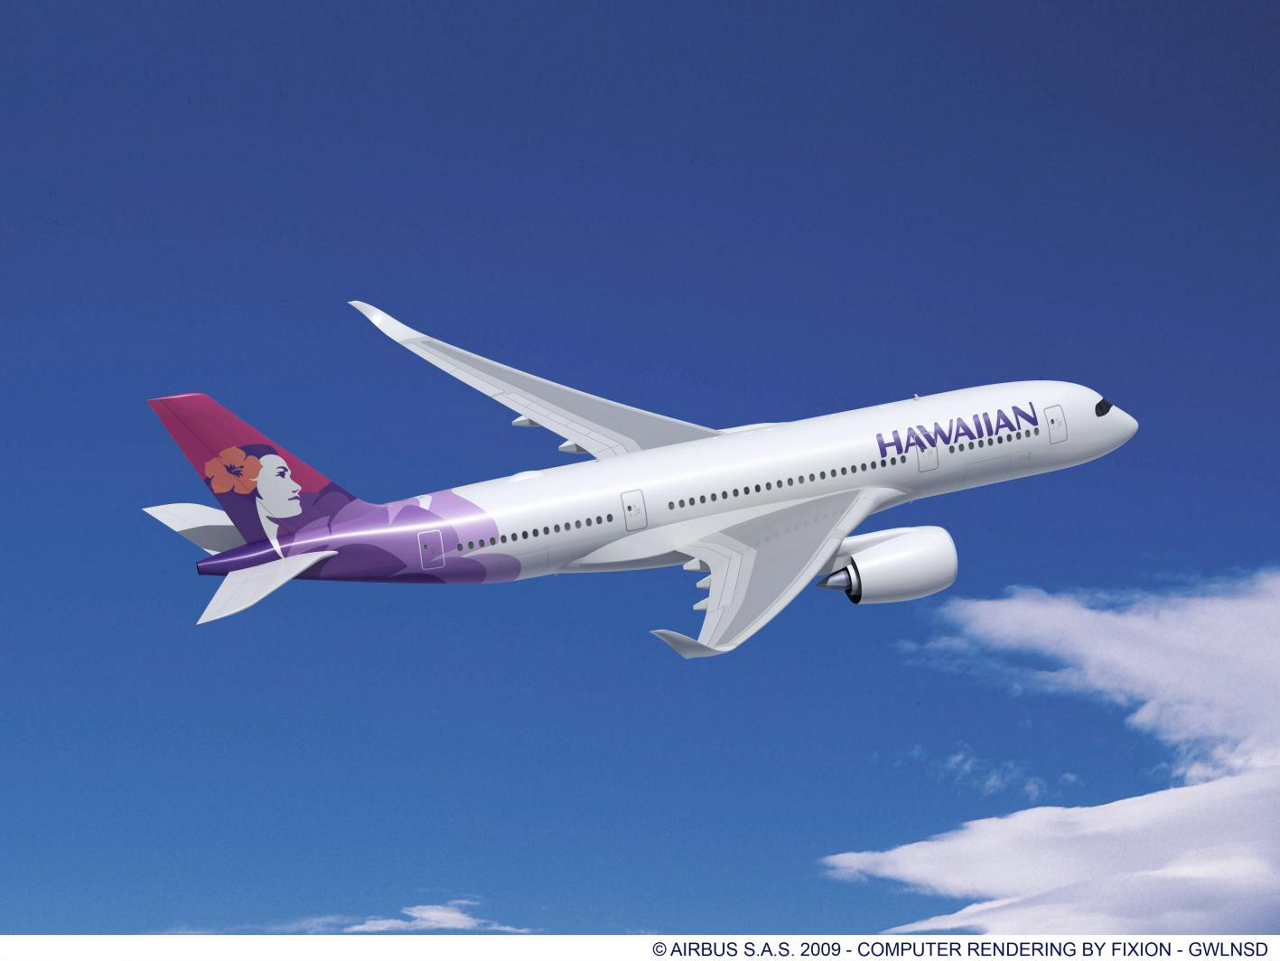 Hawaiian Airlines placed a firm order for six A350 XWB-800s and six A330-200s, finalizing a Memorandum of Understanding signed in November 2007 (4 February 2008)